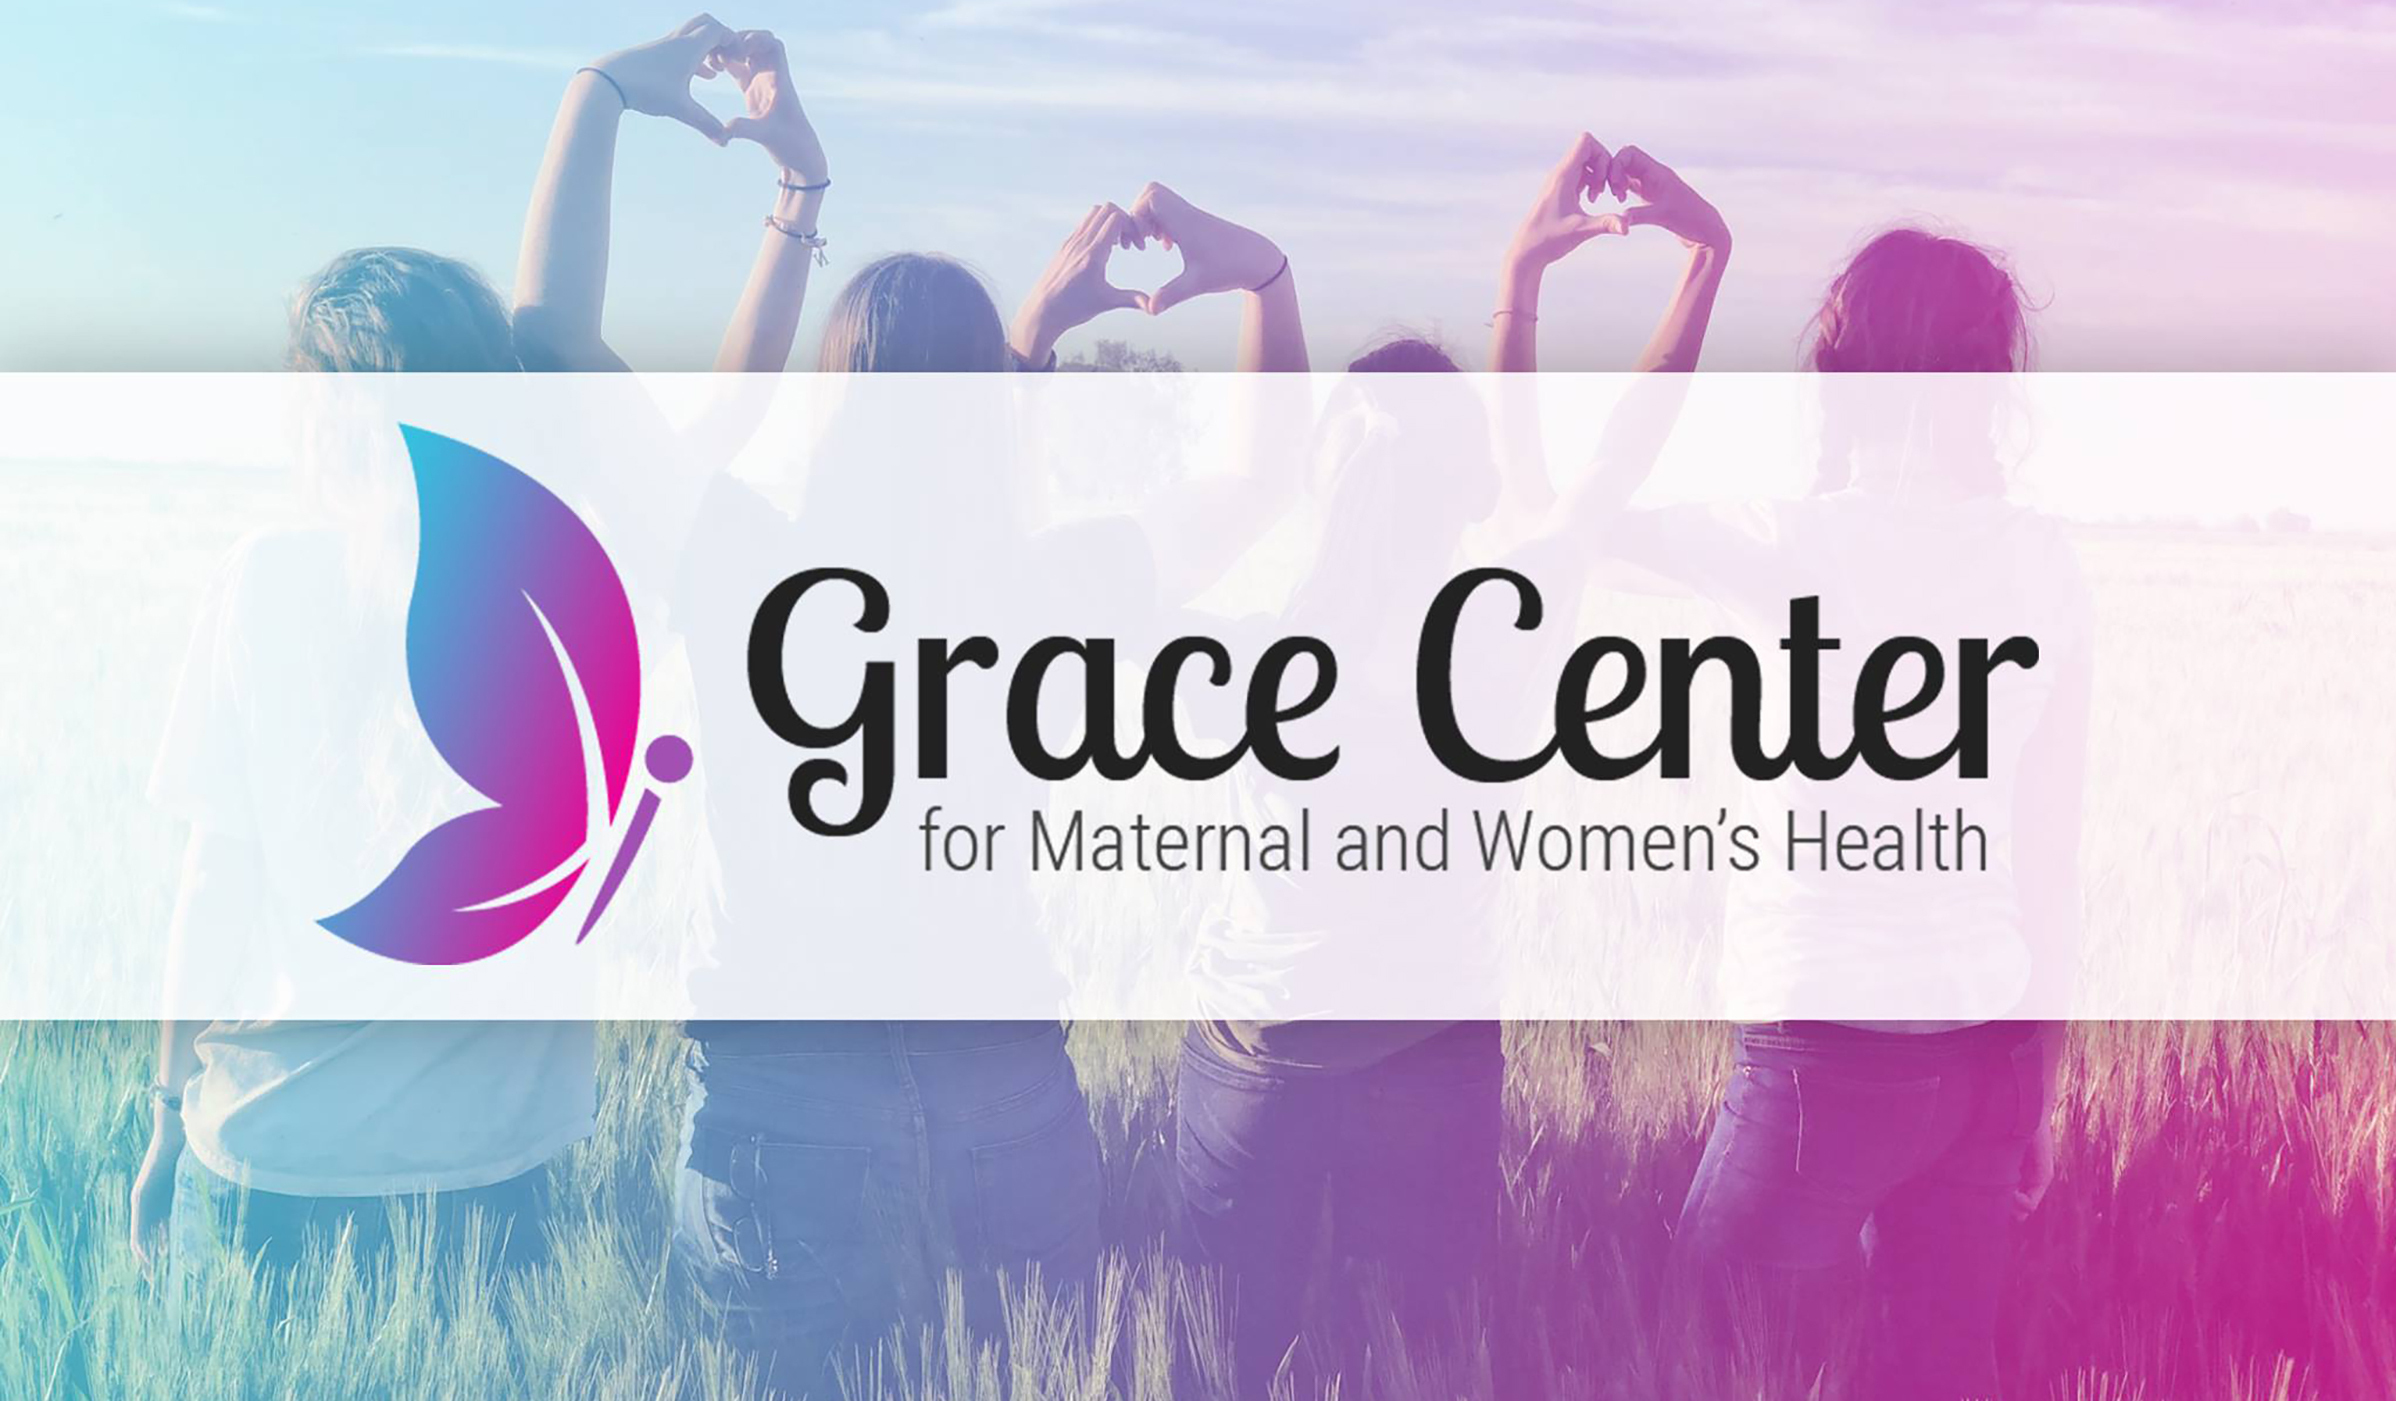 Grace Center logo and name over an image of four girls making heart shapes with their hands